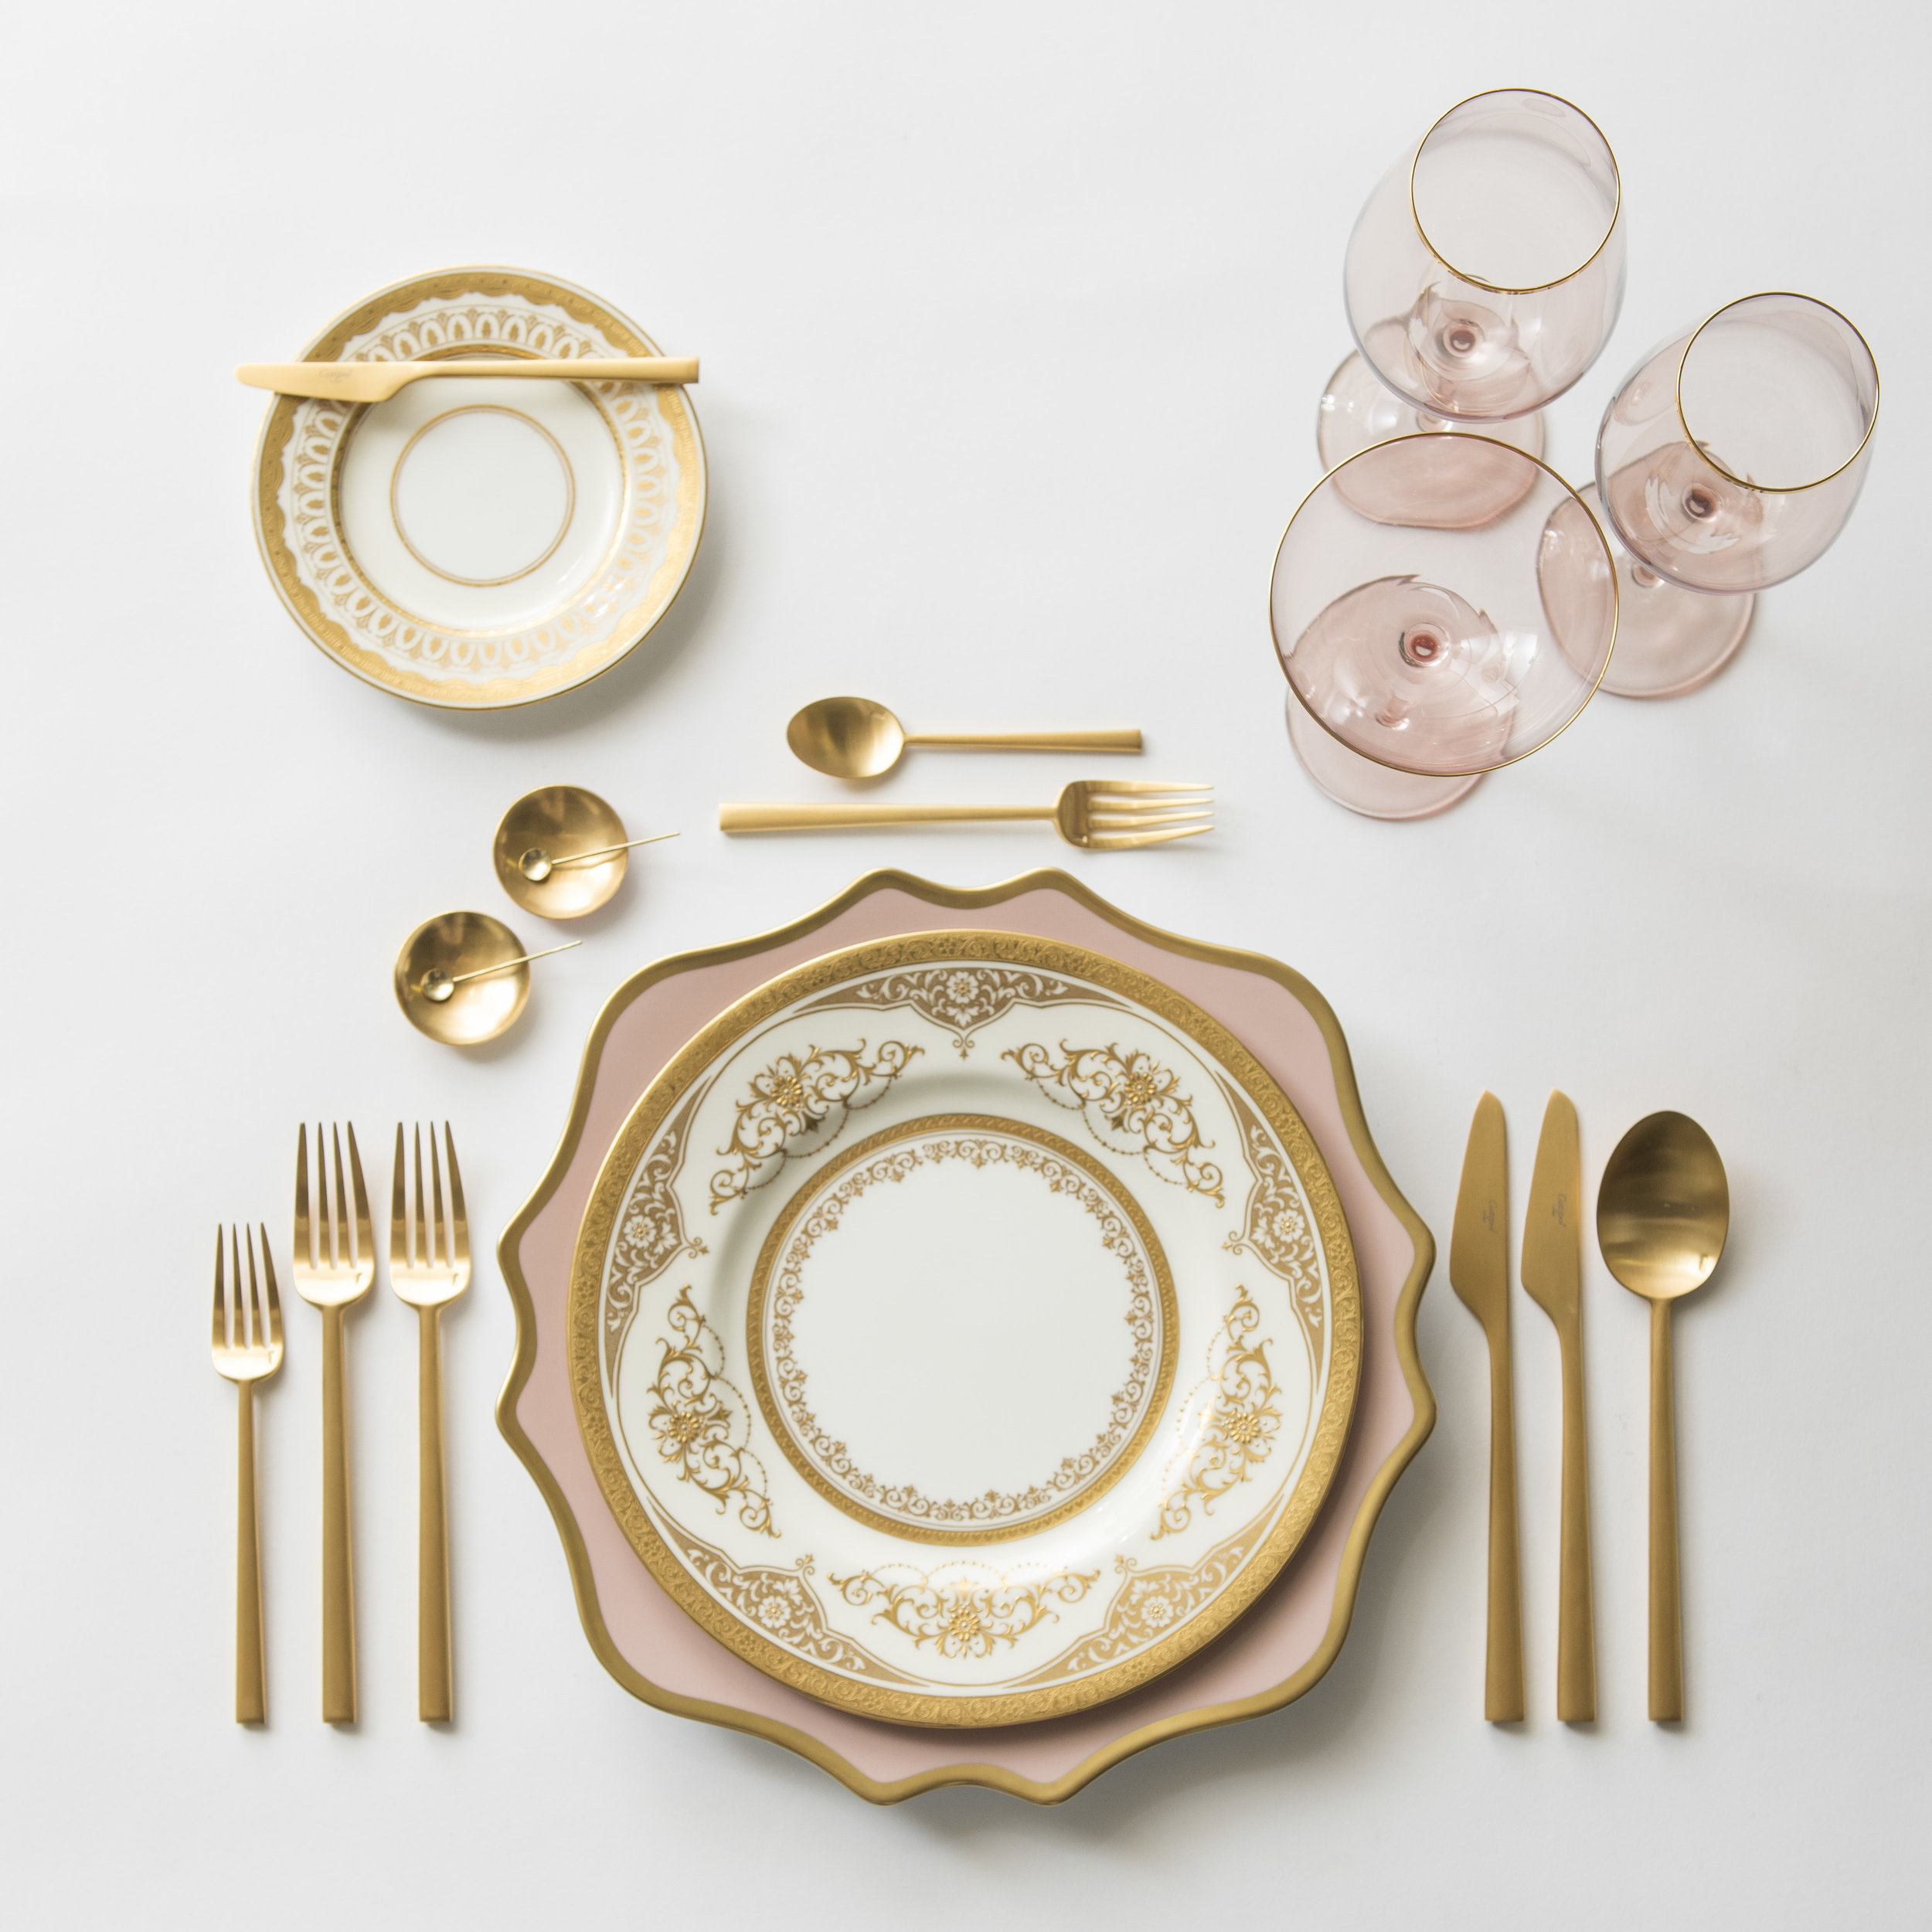 RENT: Anna Weatherley Chargers in Desert Rose/Gold + Crown Gold Collection Vintage China + Rondo Flatware in Brushed 24k Gold + Bella 24k Gold Rimmed Stemware in Blush + 14k Gold Salt Cellars + Tiny Gold Spoons  SHOP: Rondo Flatware in Brushed 24k Gold + Bella 24k Gold Rimmed Stemware in Blush + 14k Gold Salt Cellars + Tiny Gold Spoons